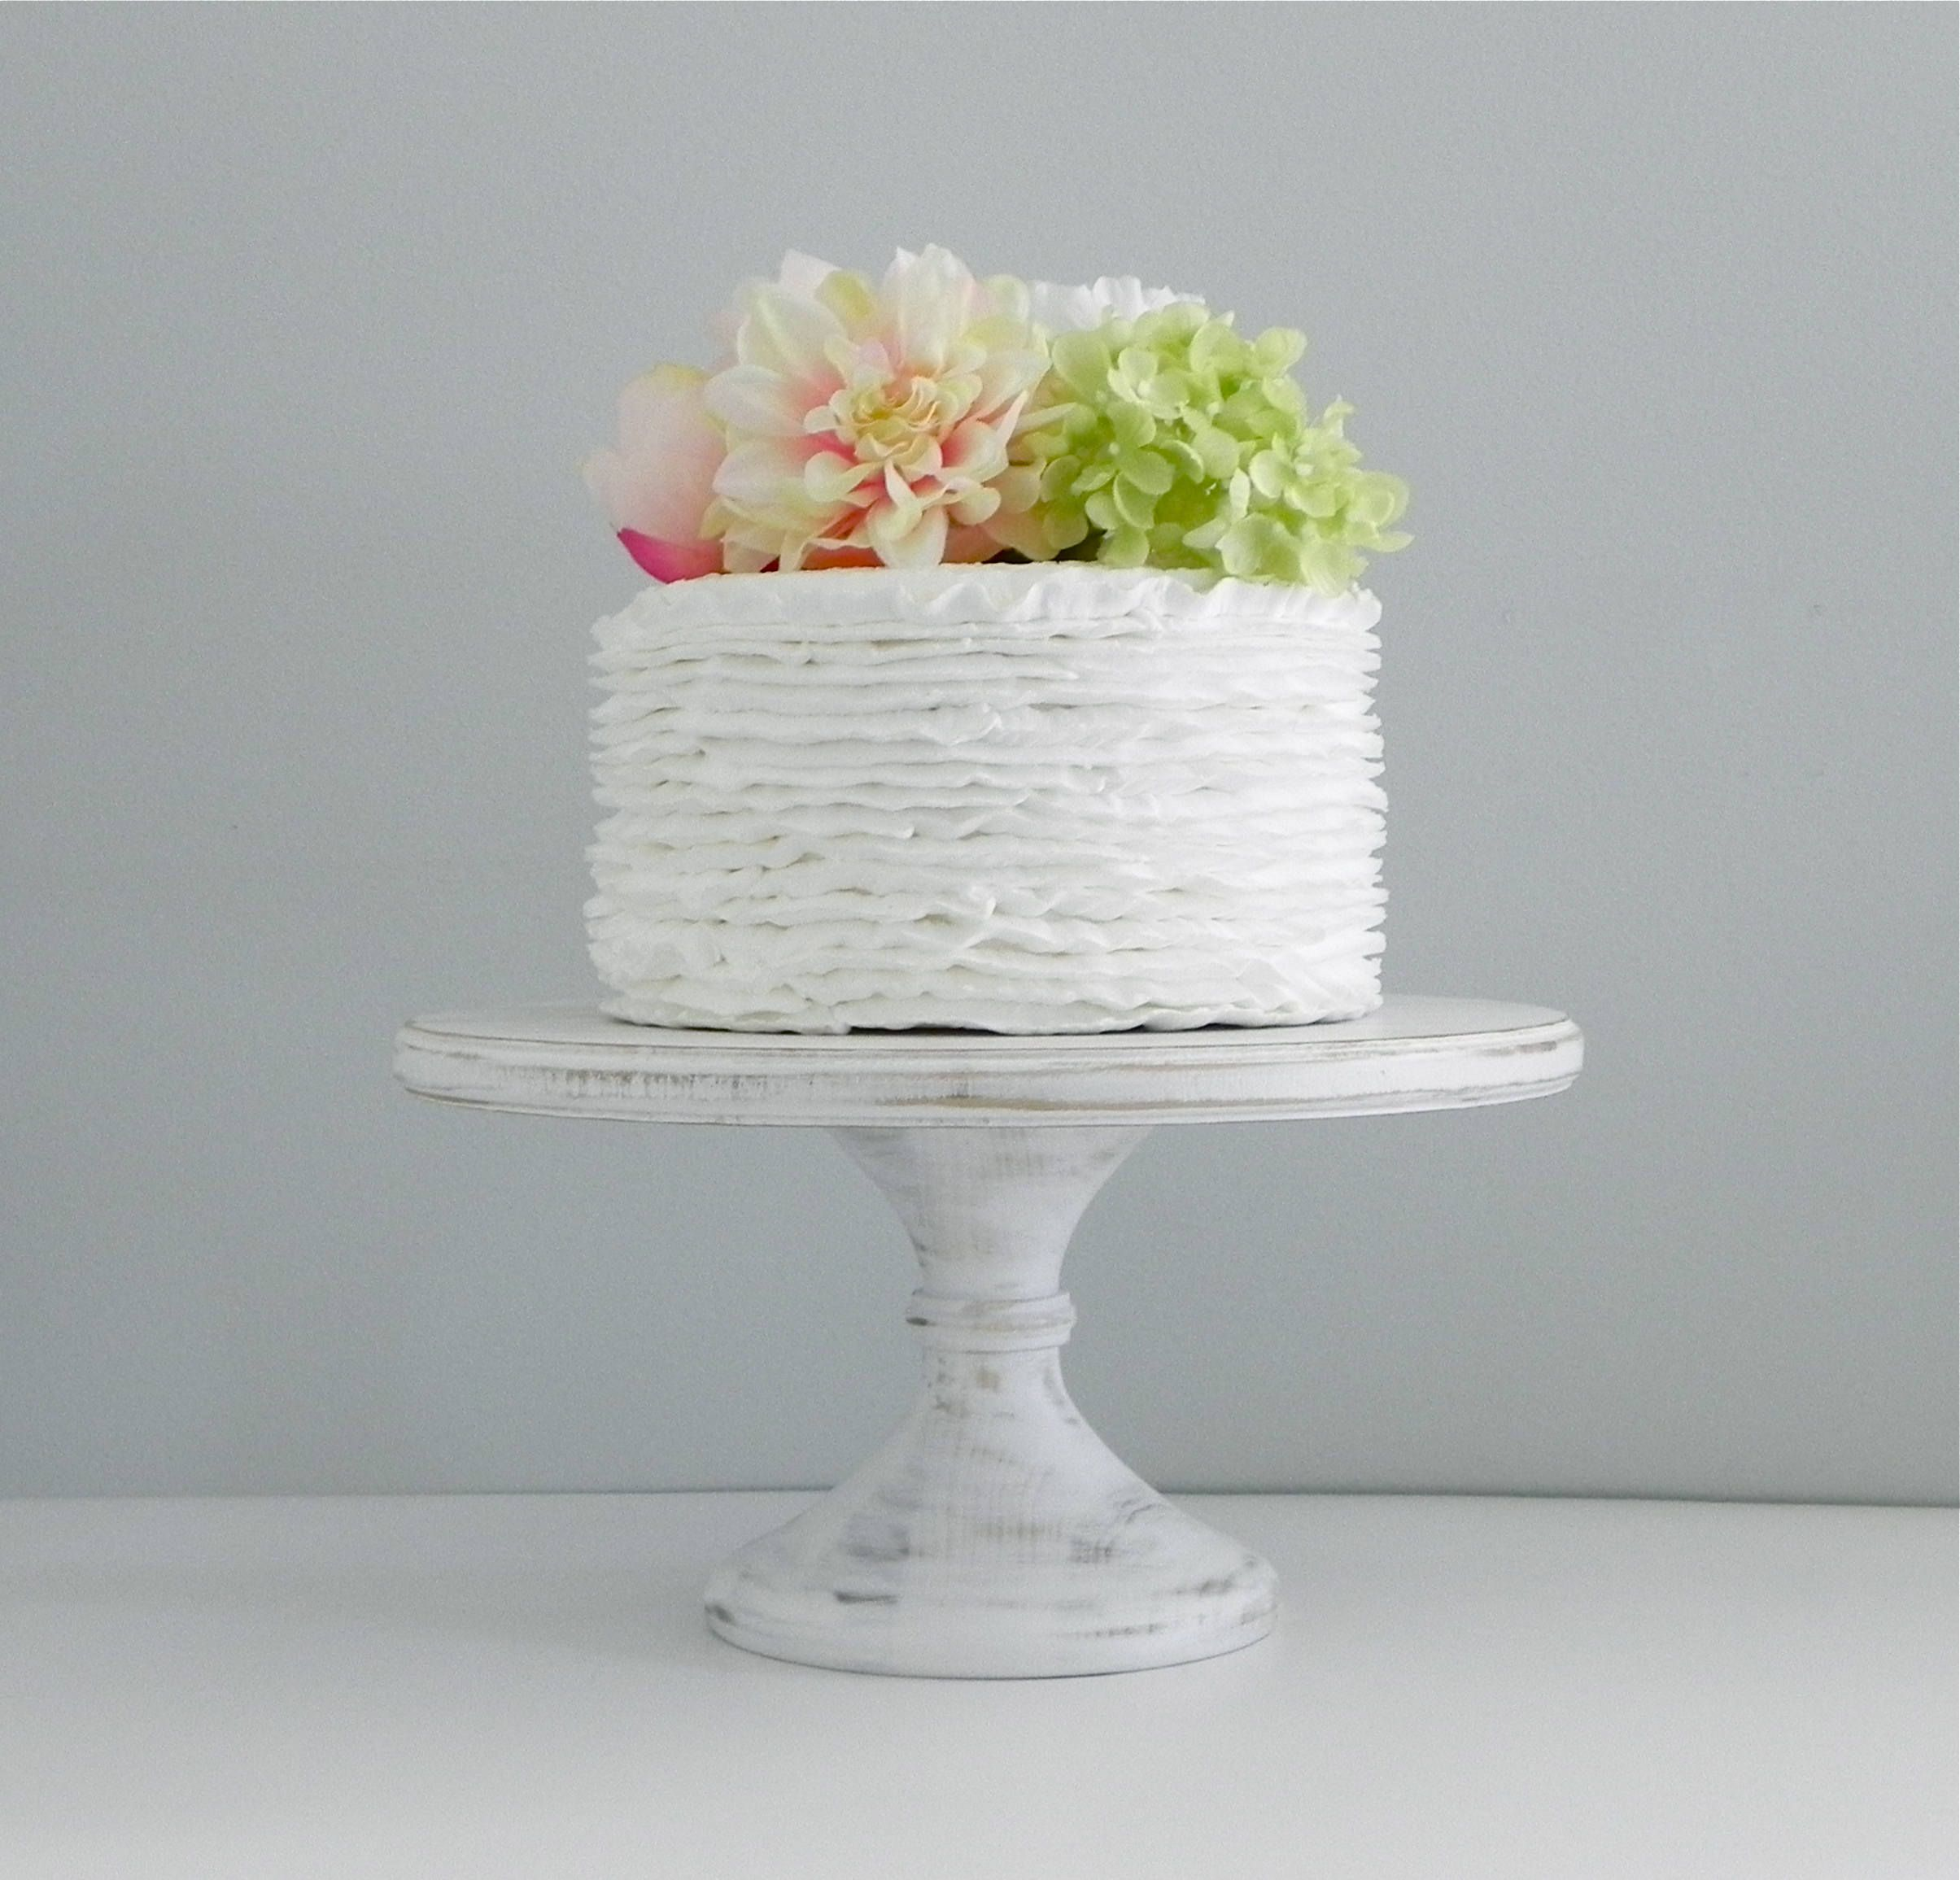 Astounding 14 Cake Stand Contemporary Best Image Engine tofale